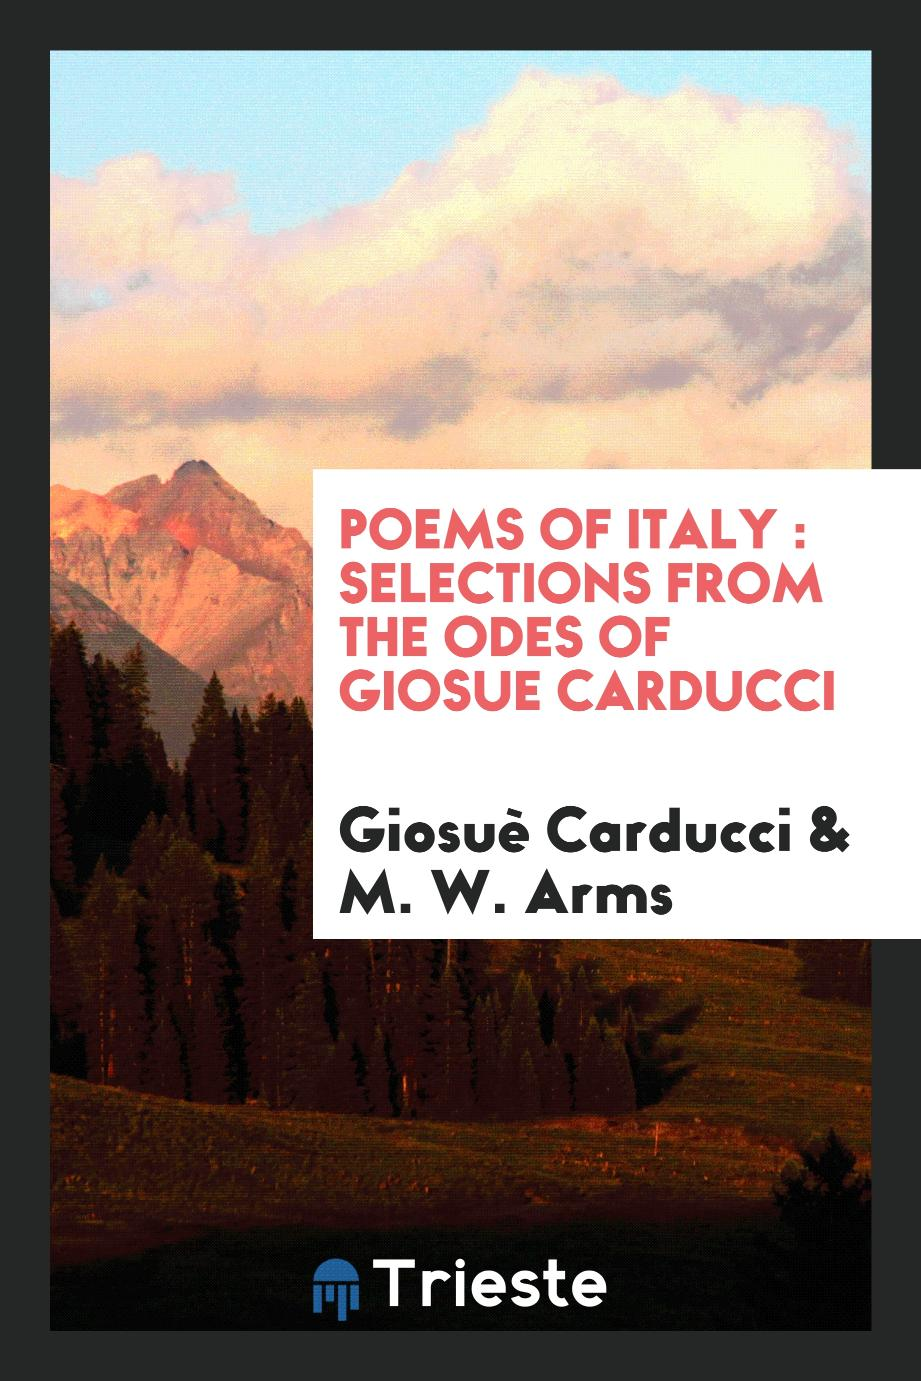 Poems of Italy : selections from the odes of Giosue Carducci